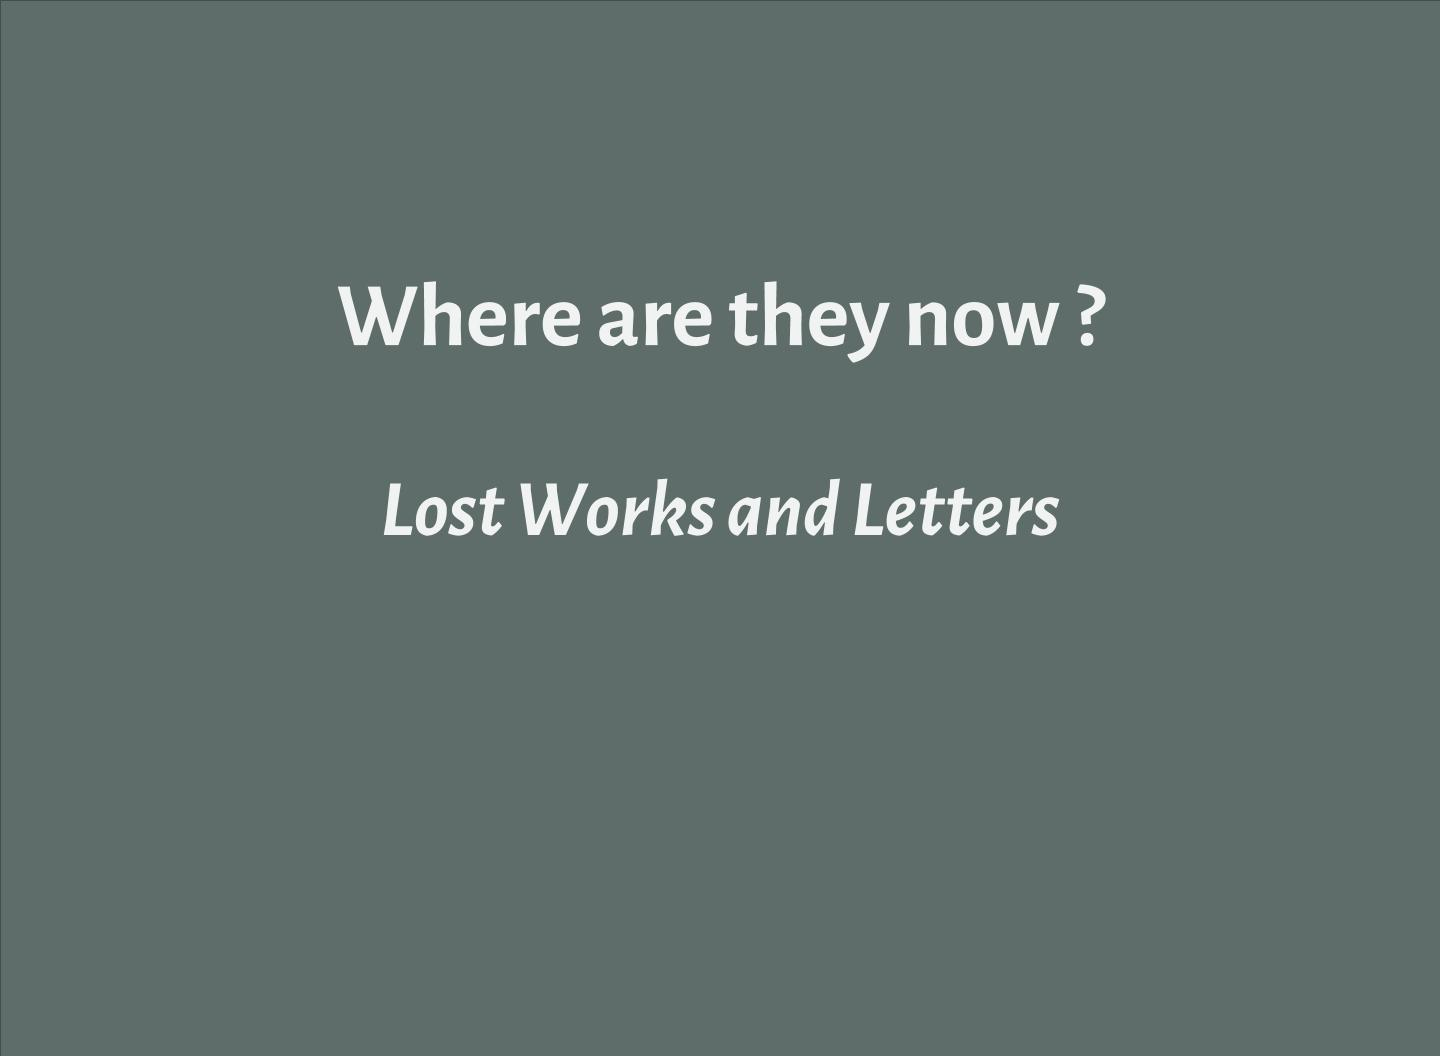 Slide-Where-are-they-now-Lost-Works-Letters_5f6d6a-f1f3f2_bold.jpg